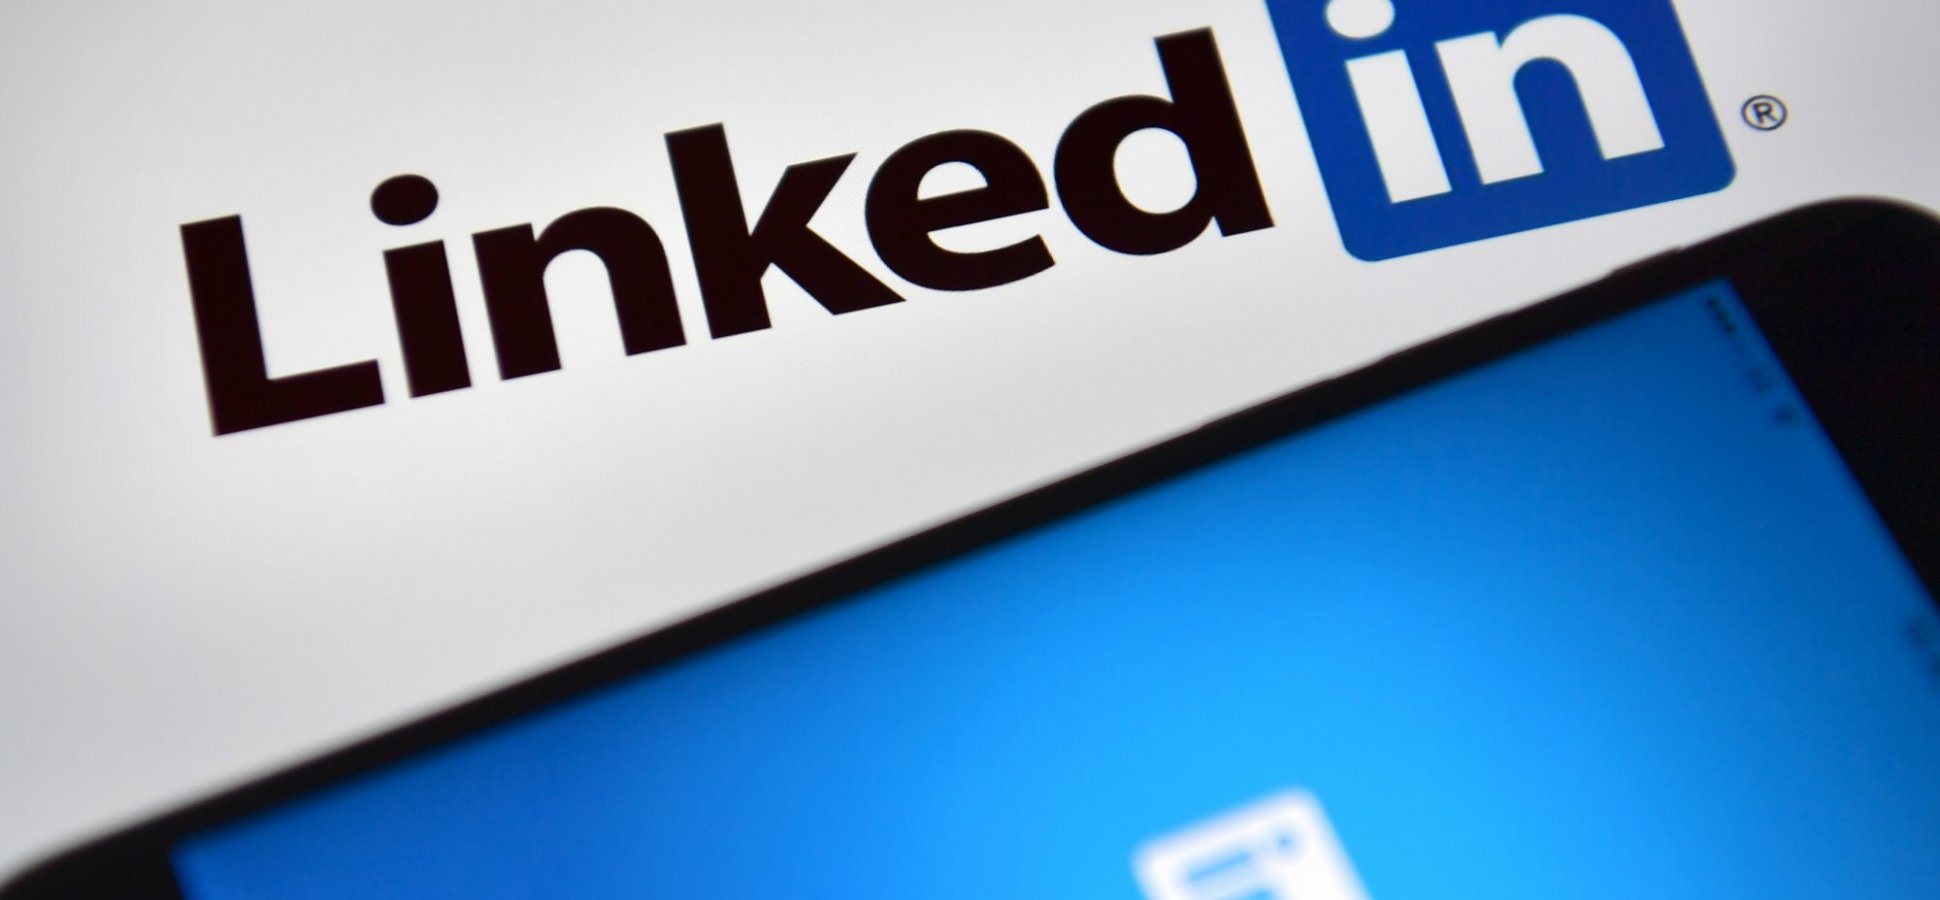 LinkedIn Just Revealed the Results of Its 2020 Global Talent Trends Report and There Are Some Big Surprises